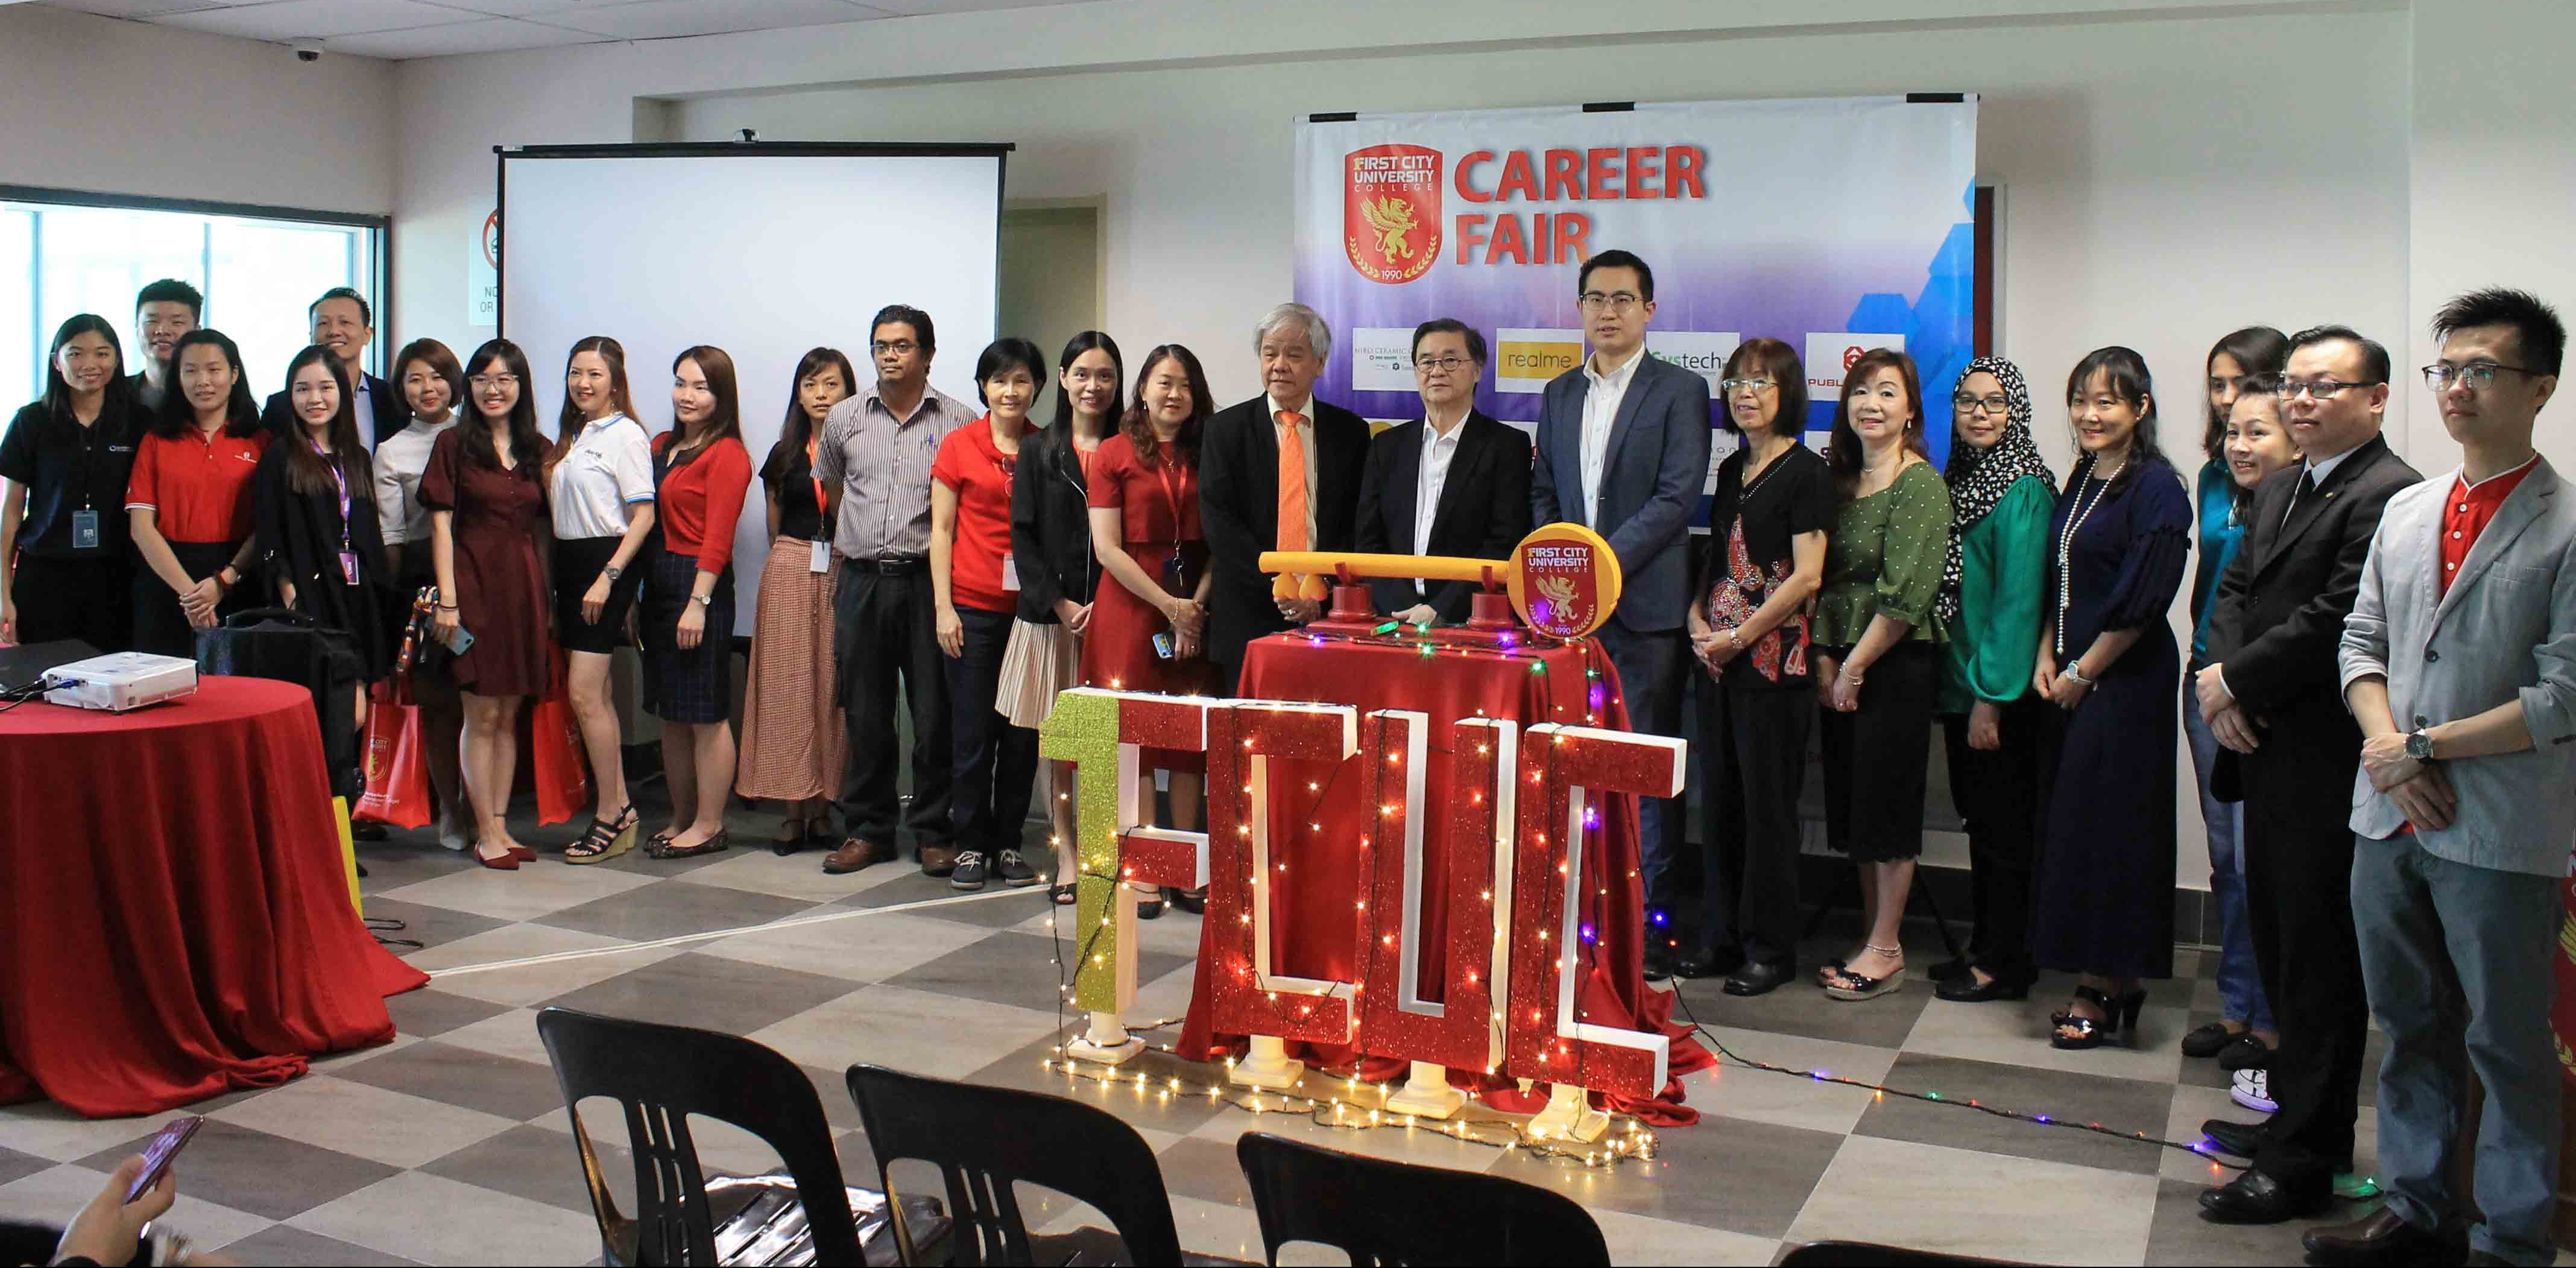 2019 Career Fair Day: Opening The Doors Of Opportunity